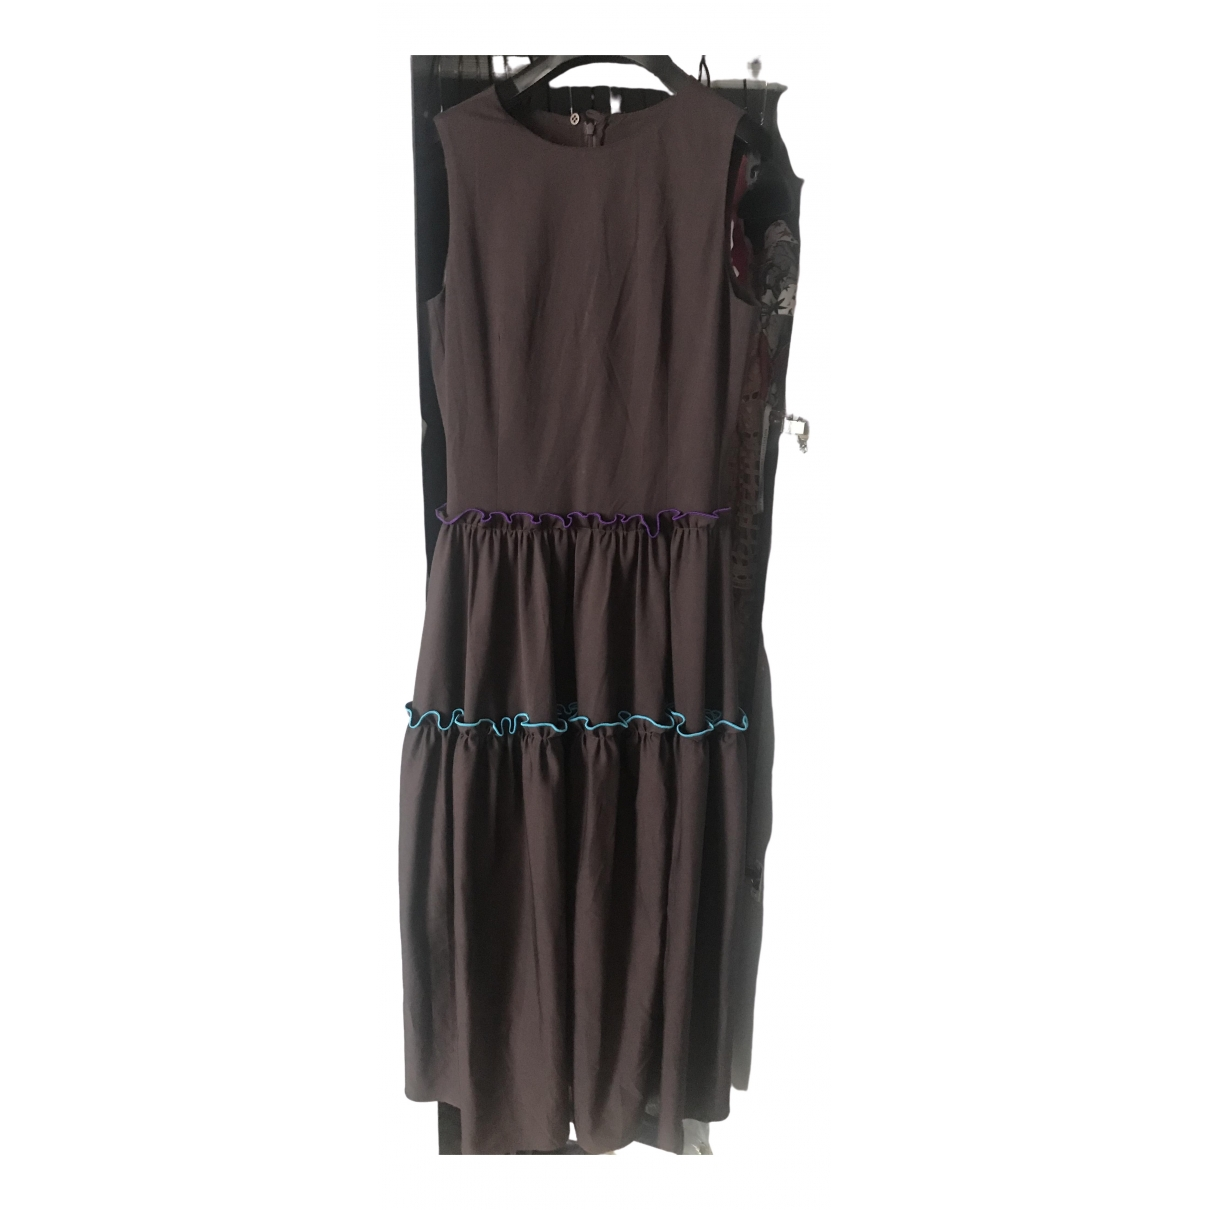 Emporio Armani \N Brown Cotton - elasthane dress for Women 40 IT